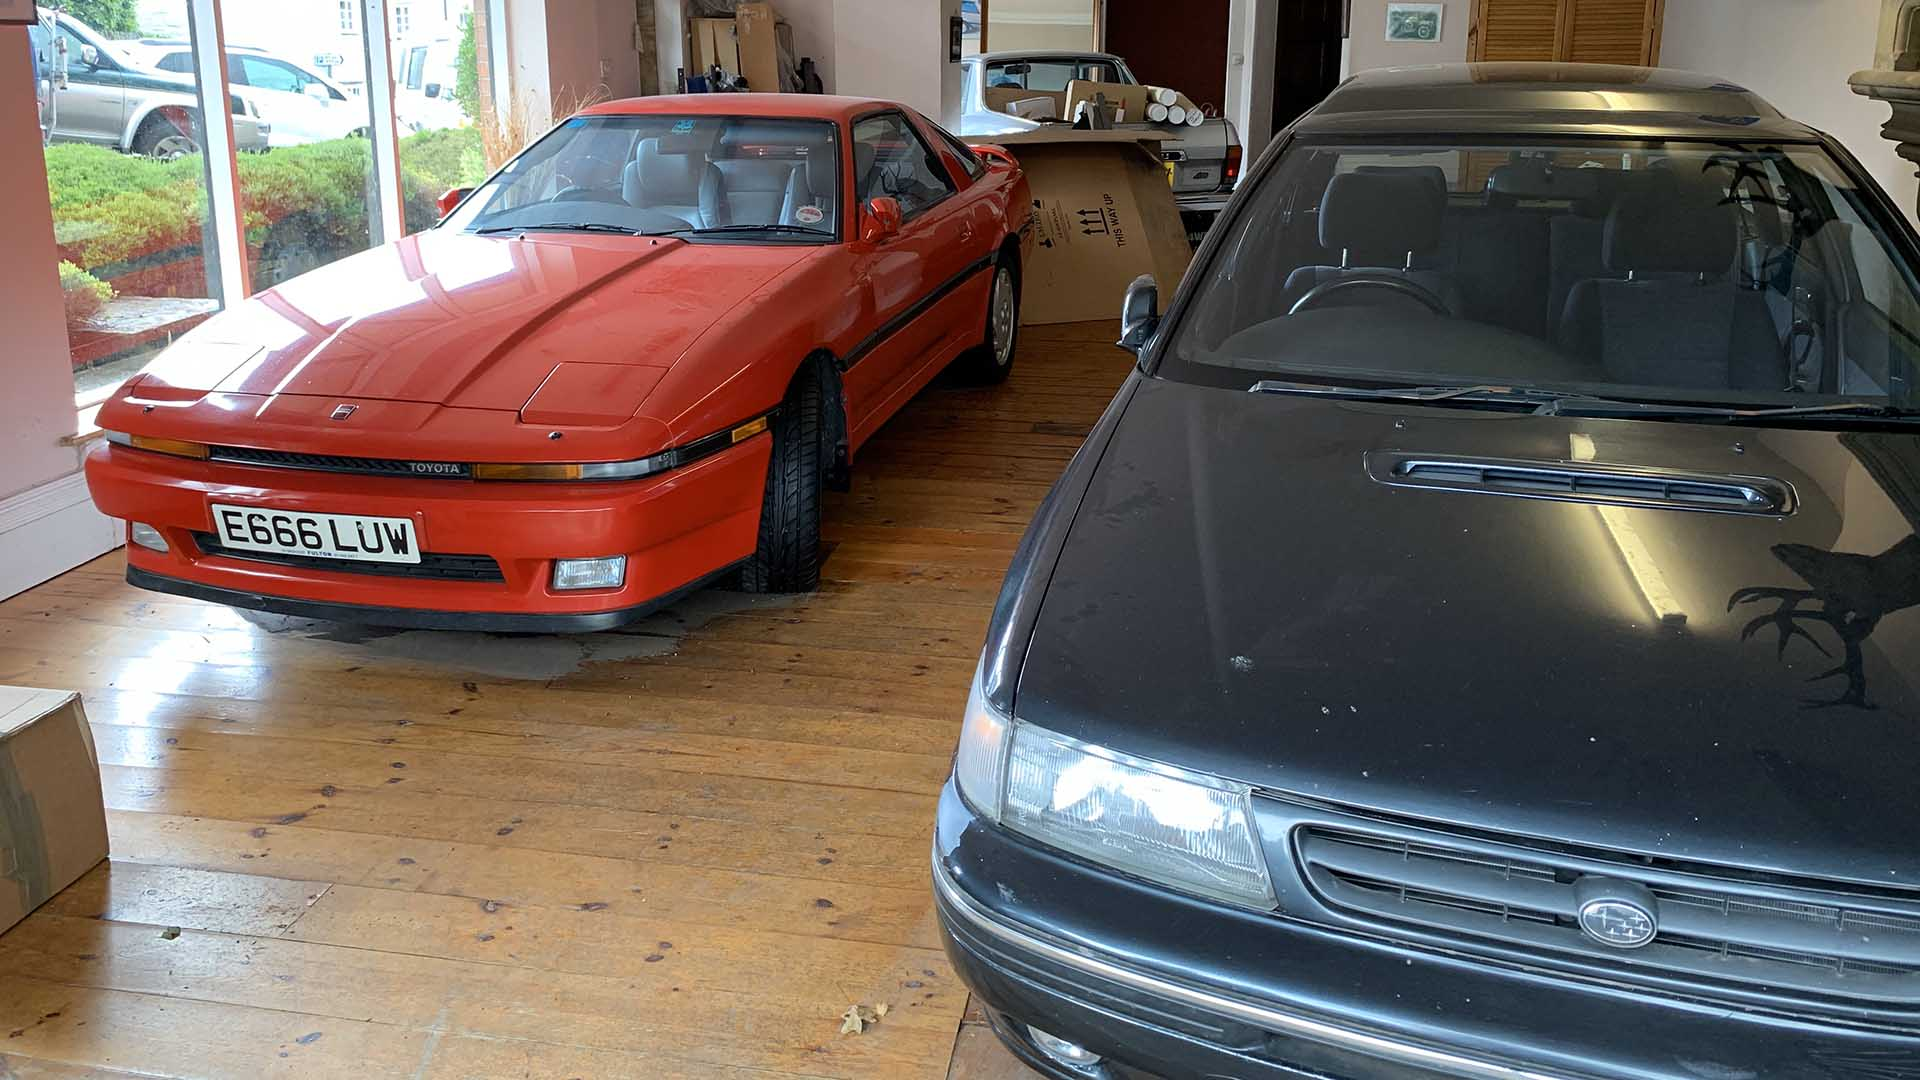 Dulverton apartment with Japanese cars